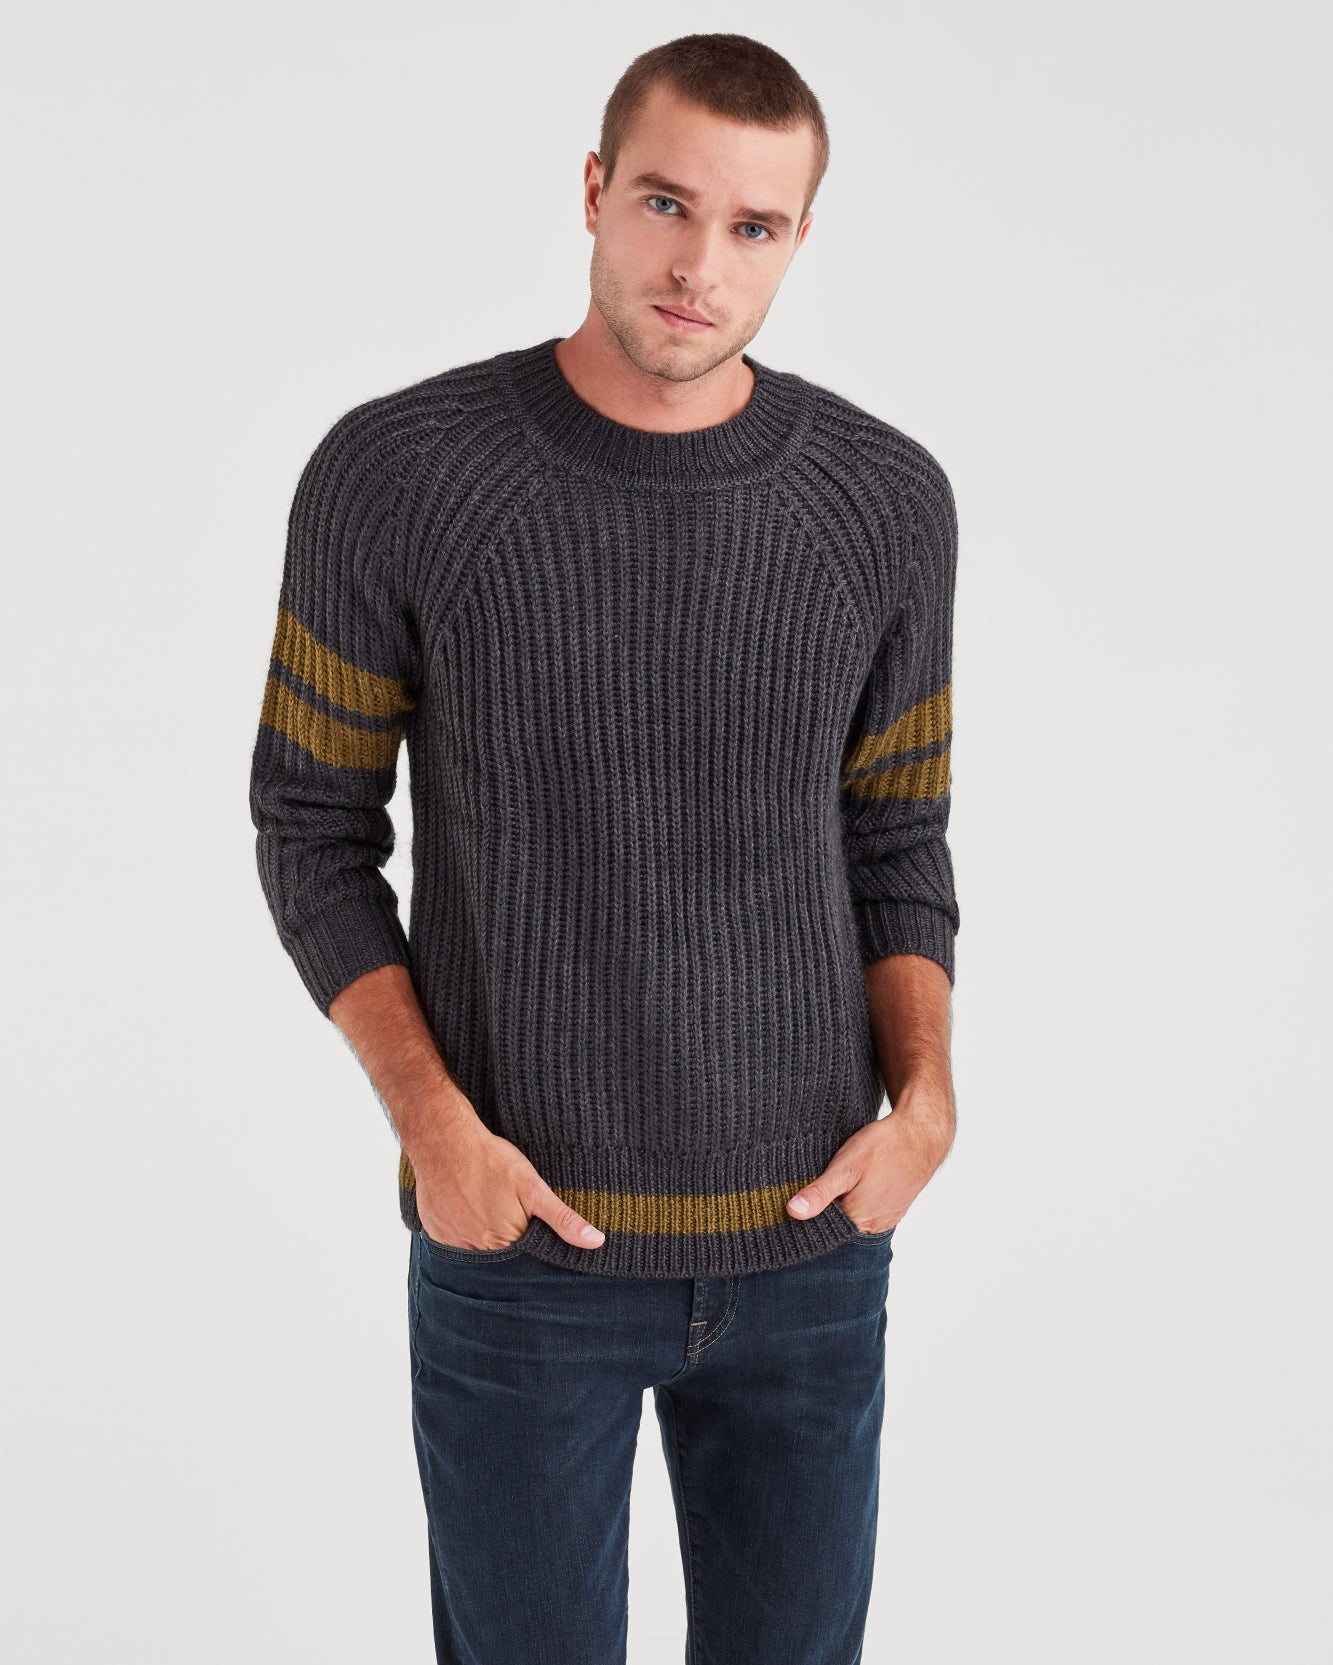 Image of College Military Sweater in Charcoal and Olive Stripe